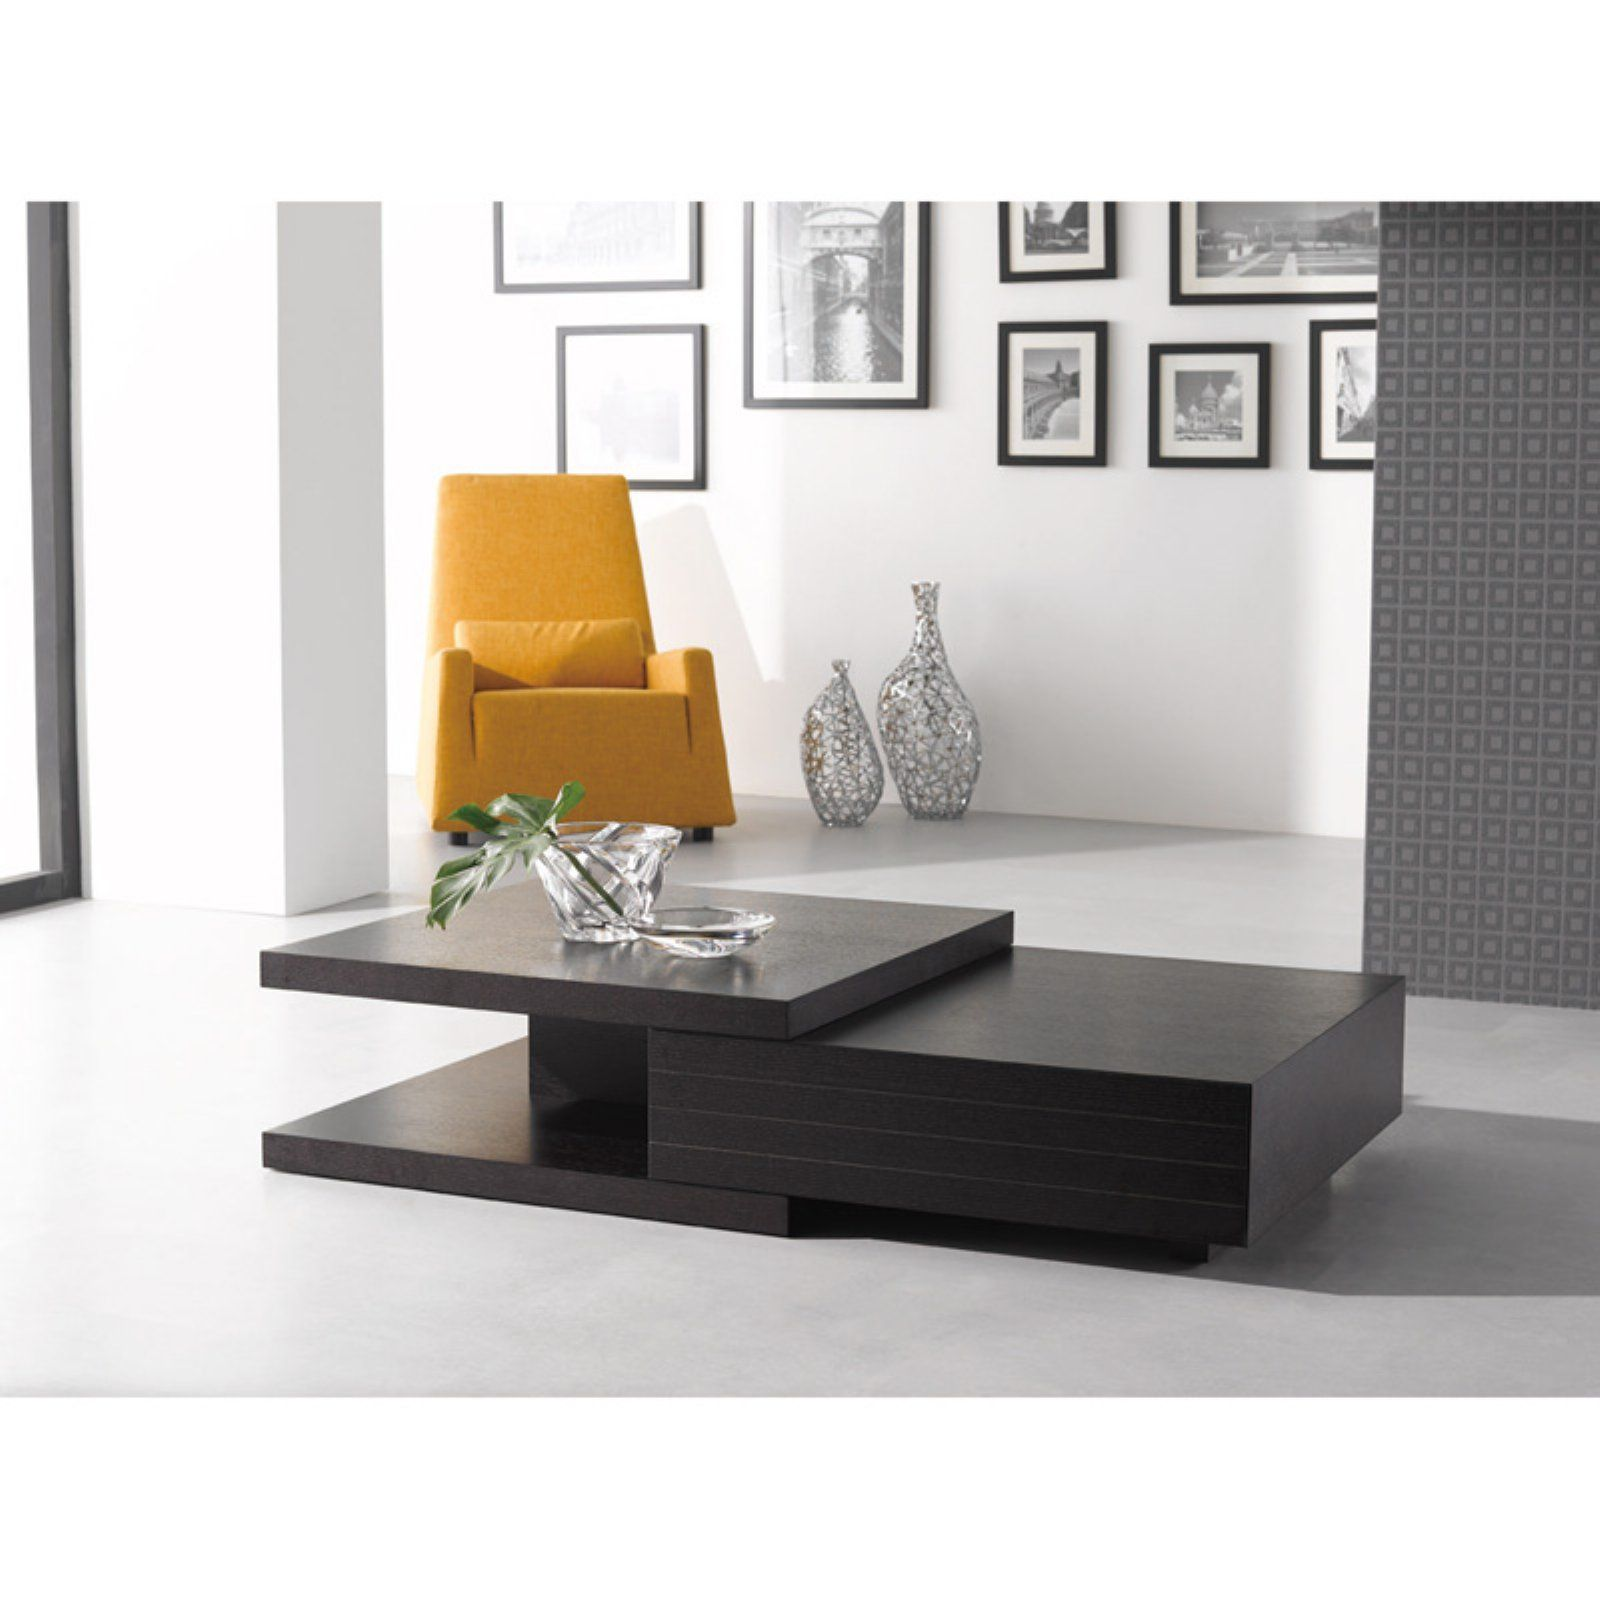 J M Furniture Hk19 Coffee Table Coffee Table Modern Furniture Living Room Contemporary Coffee Table Modern coffee table by j and m furniture